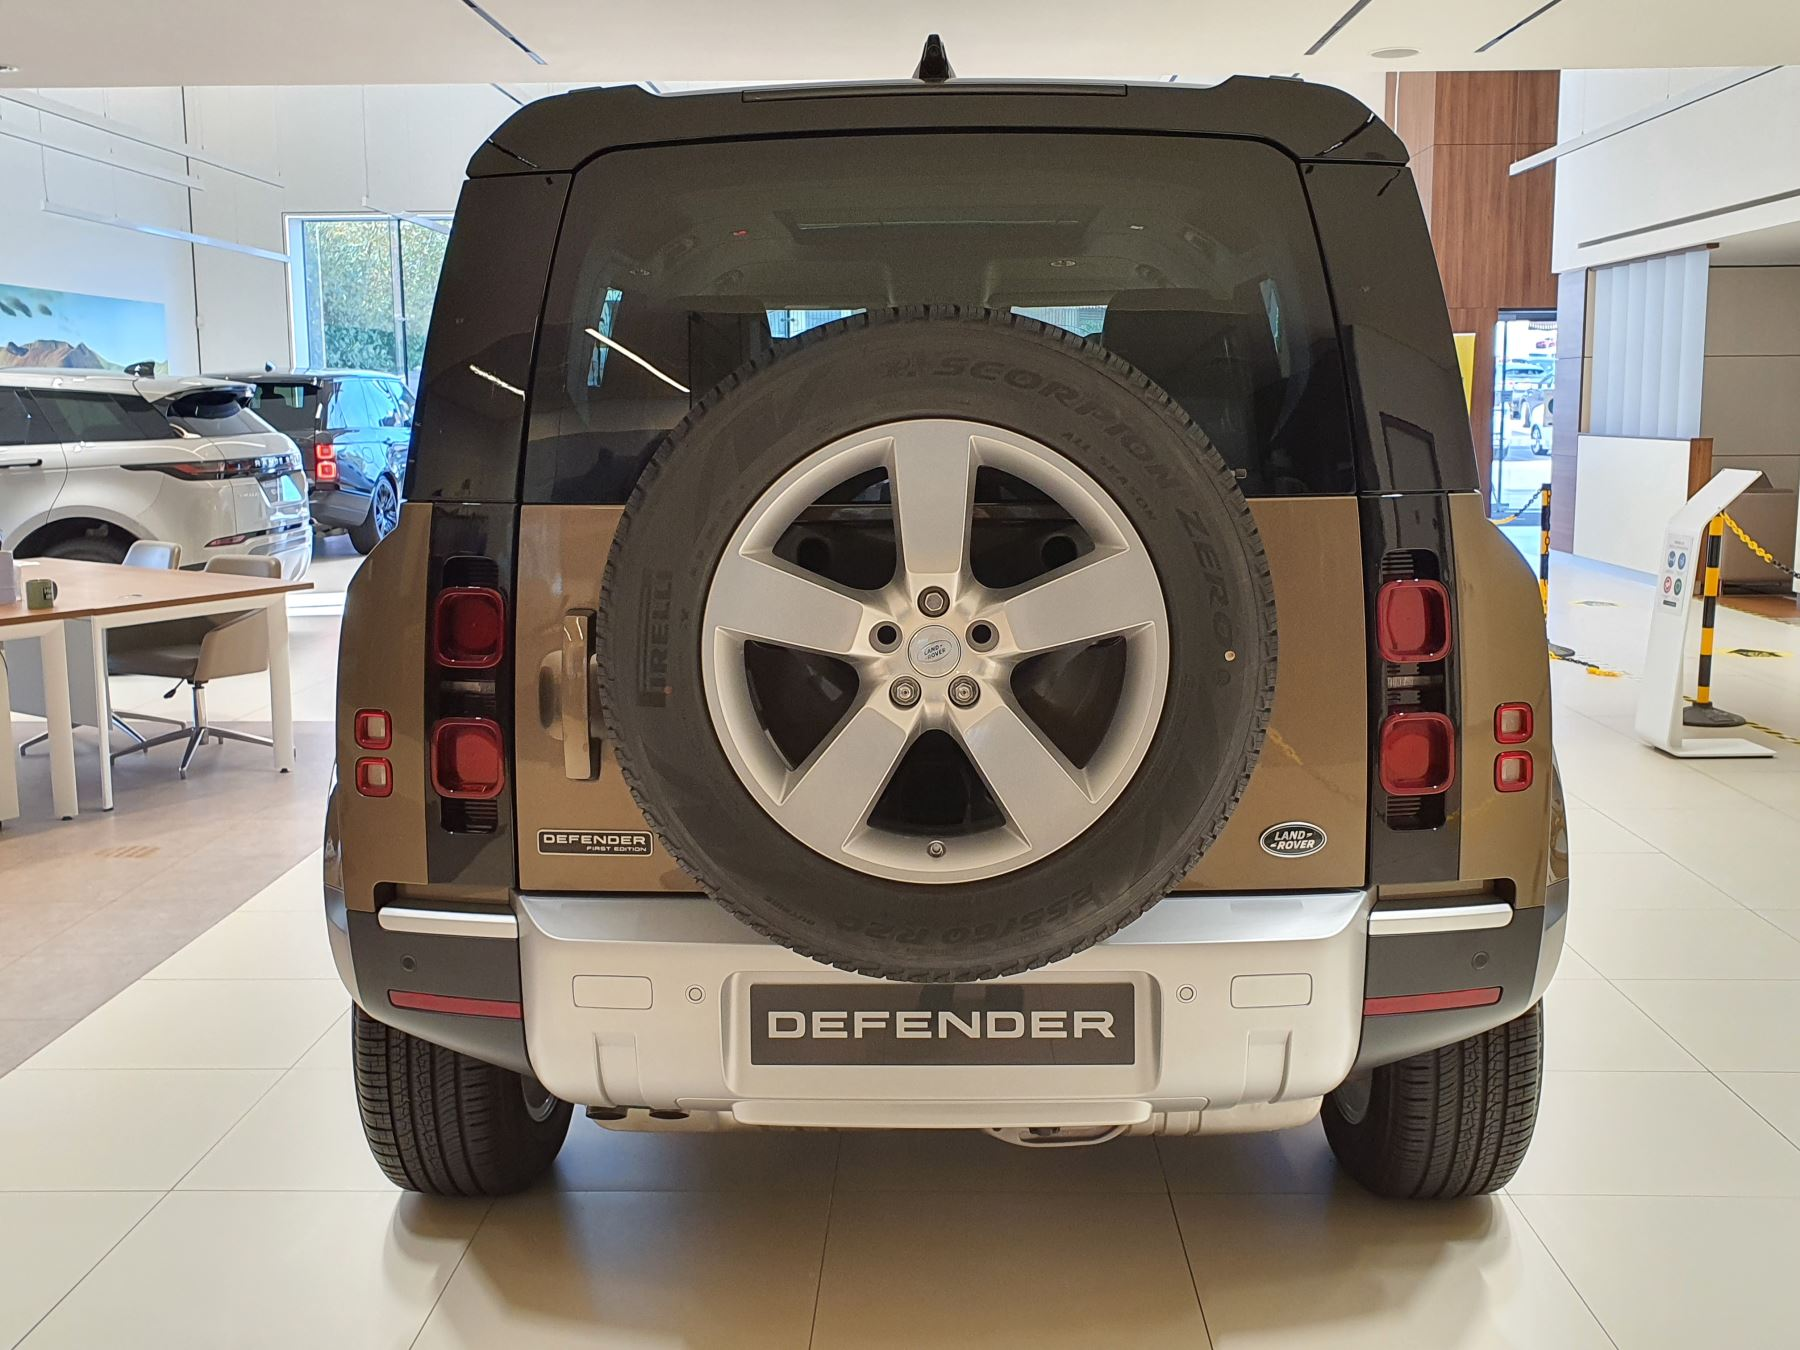 Land Rover Defender 2.0 D240 First Edition 110 SPECIAL EDITIONS image 7